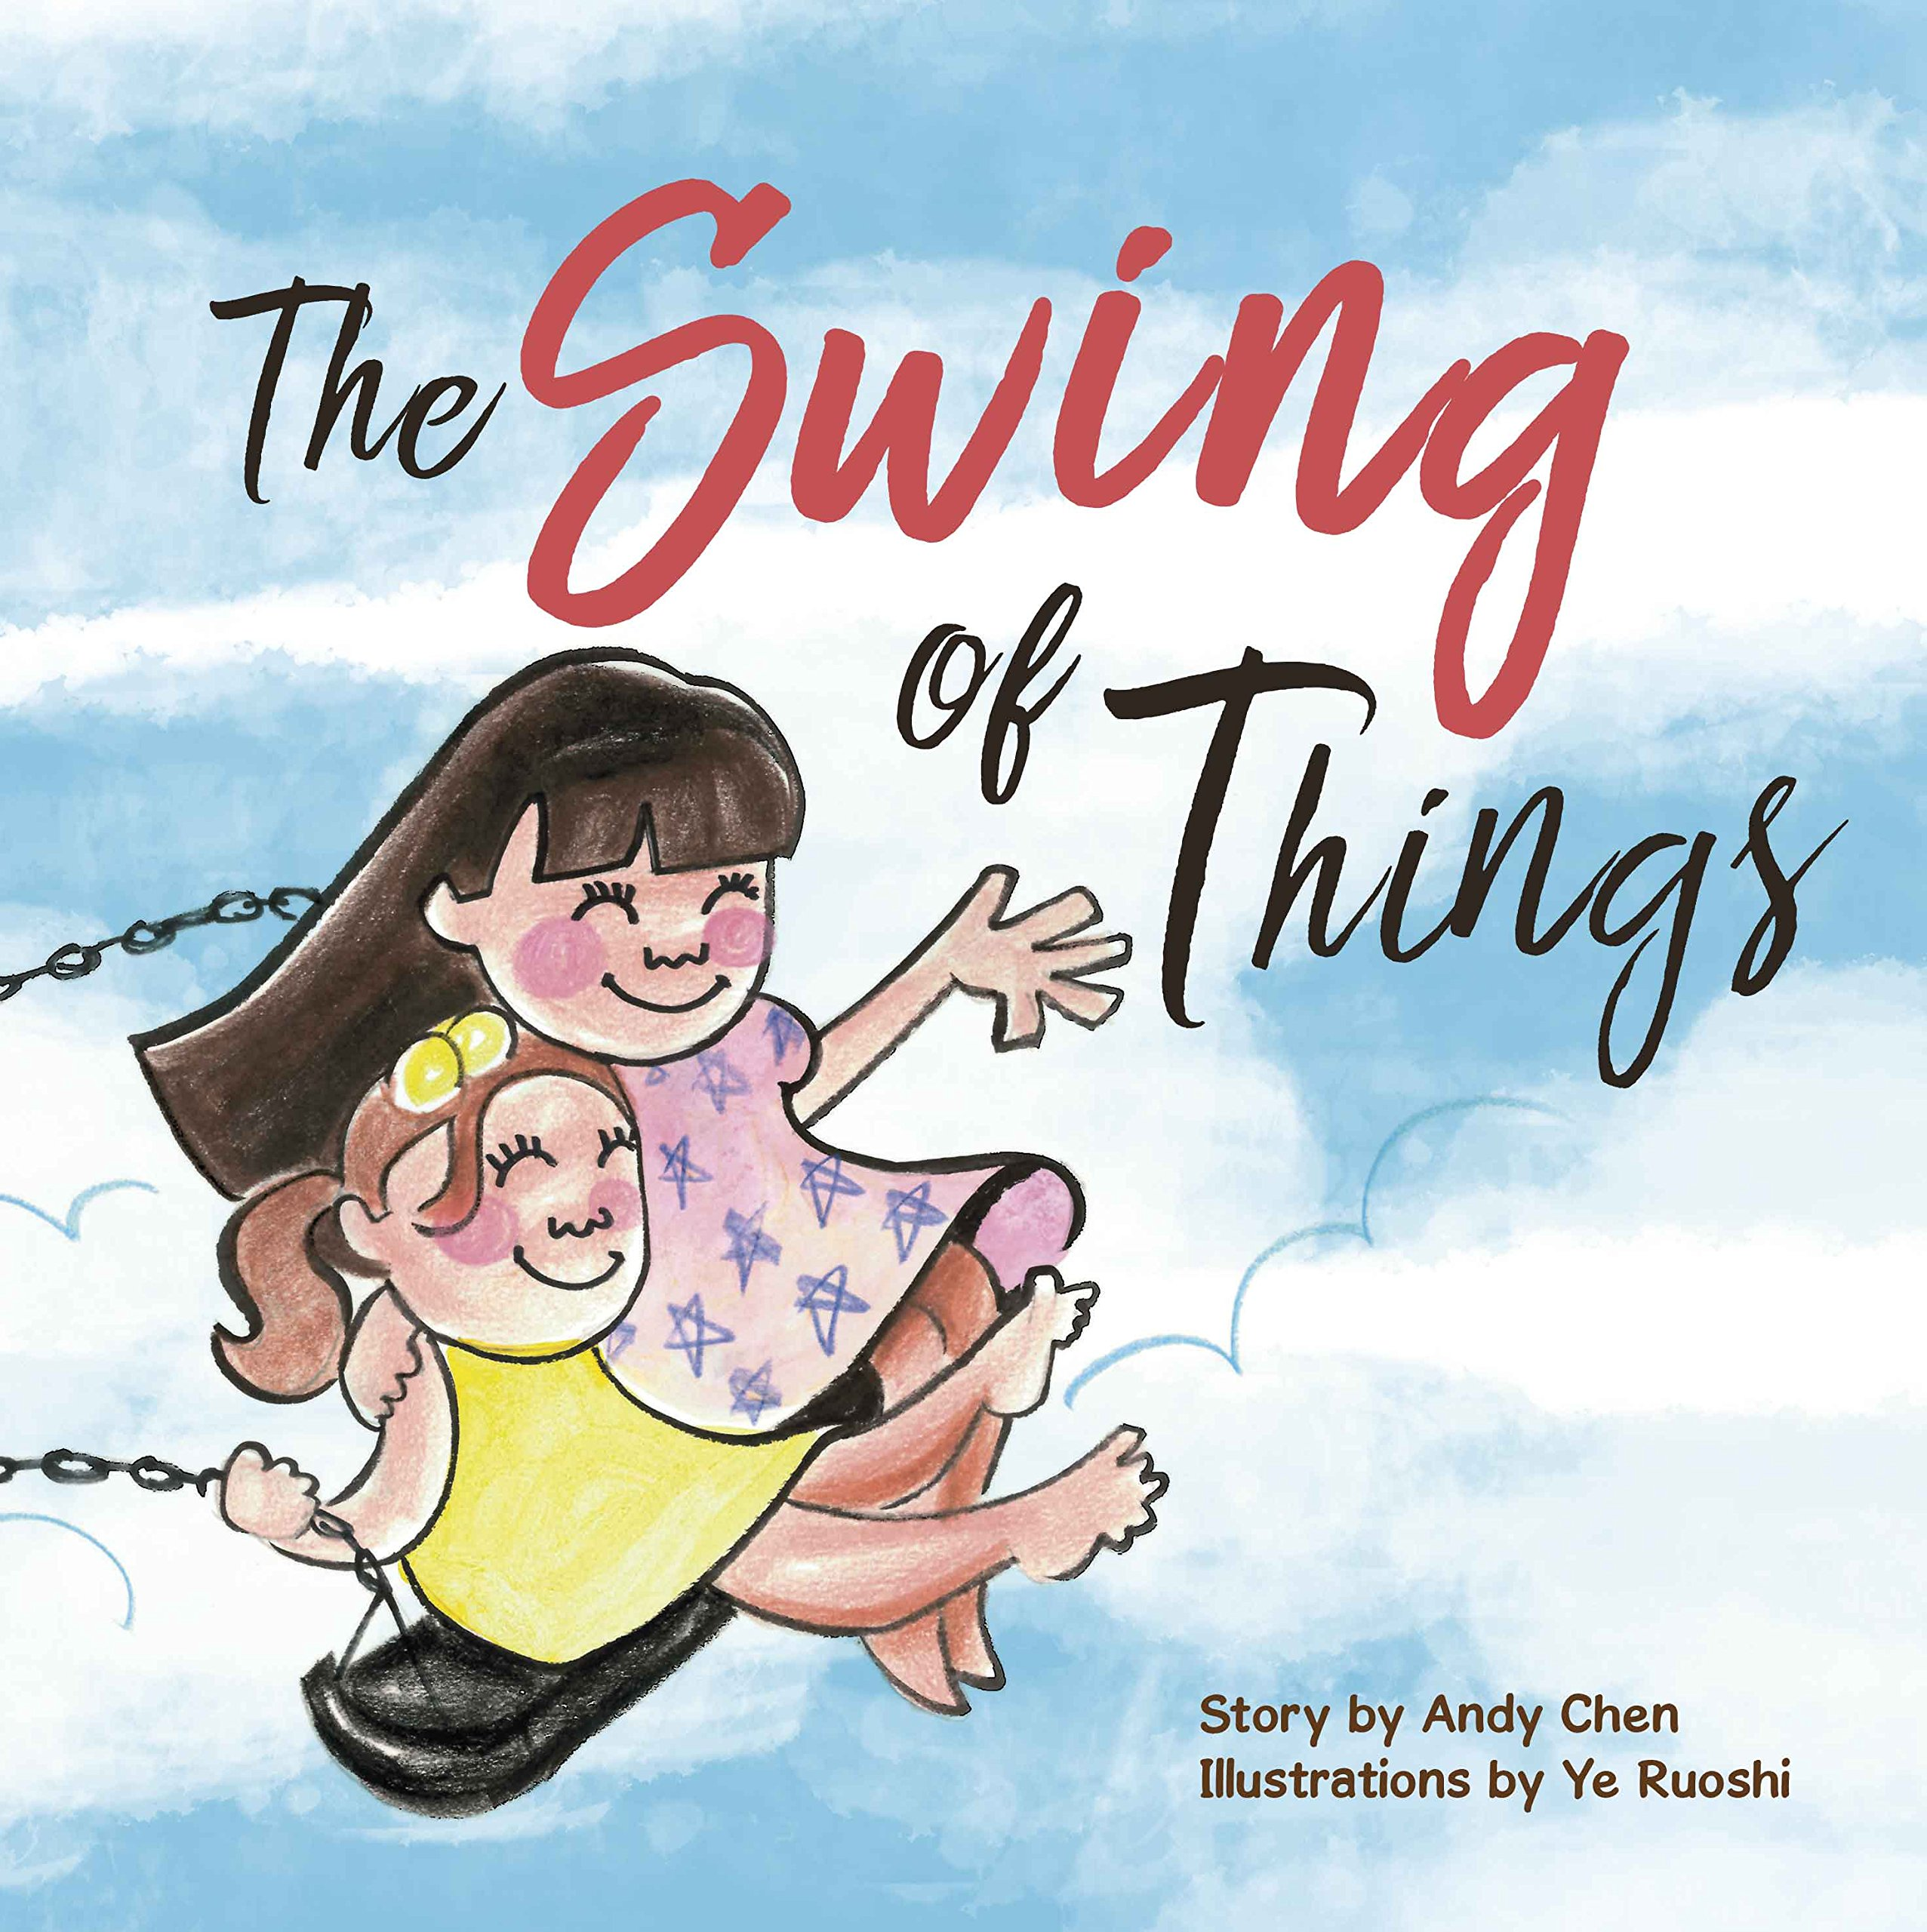 ce1a611a652e THE SWING OF THINGS  Andy Chen  9789814642934  Amazon.com  Books